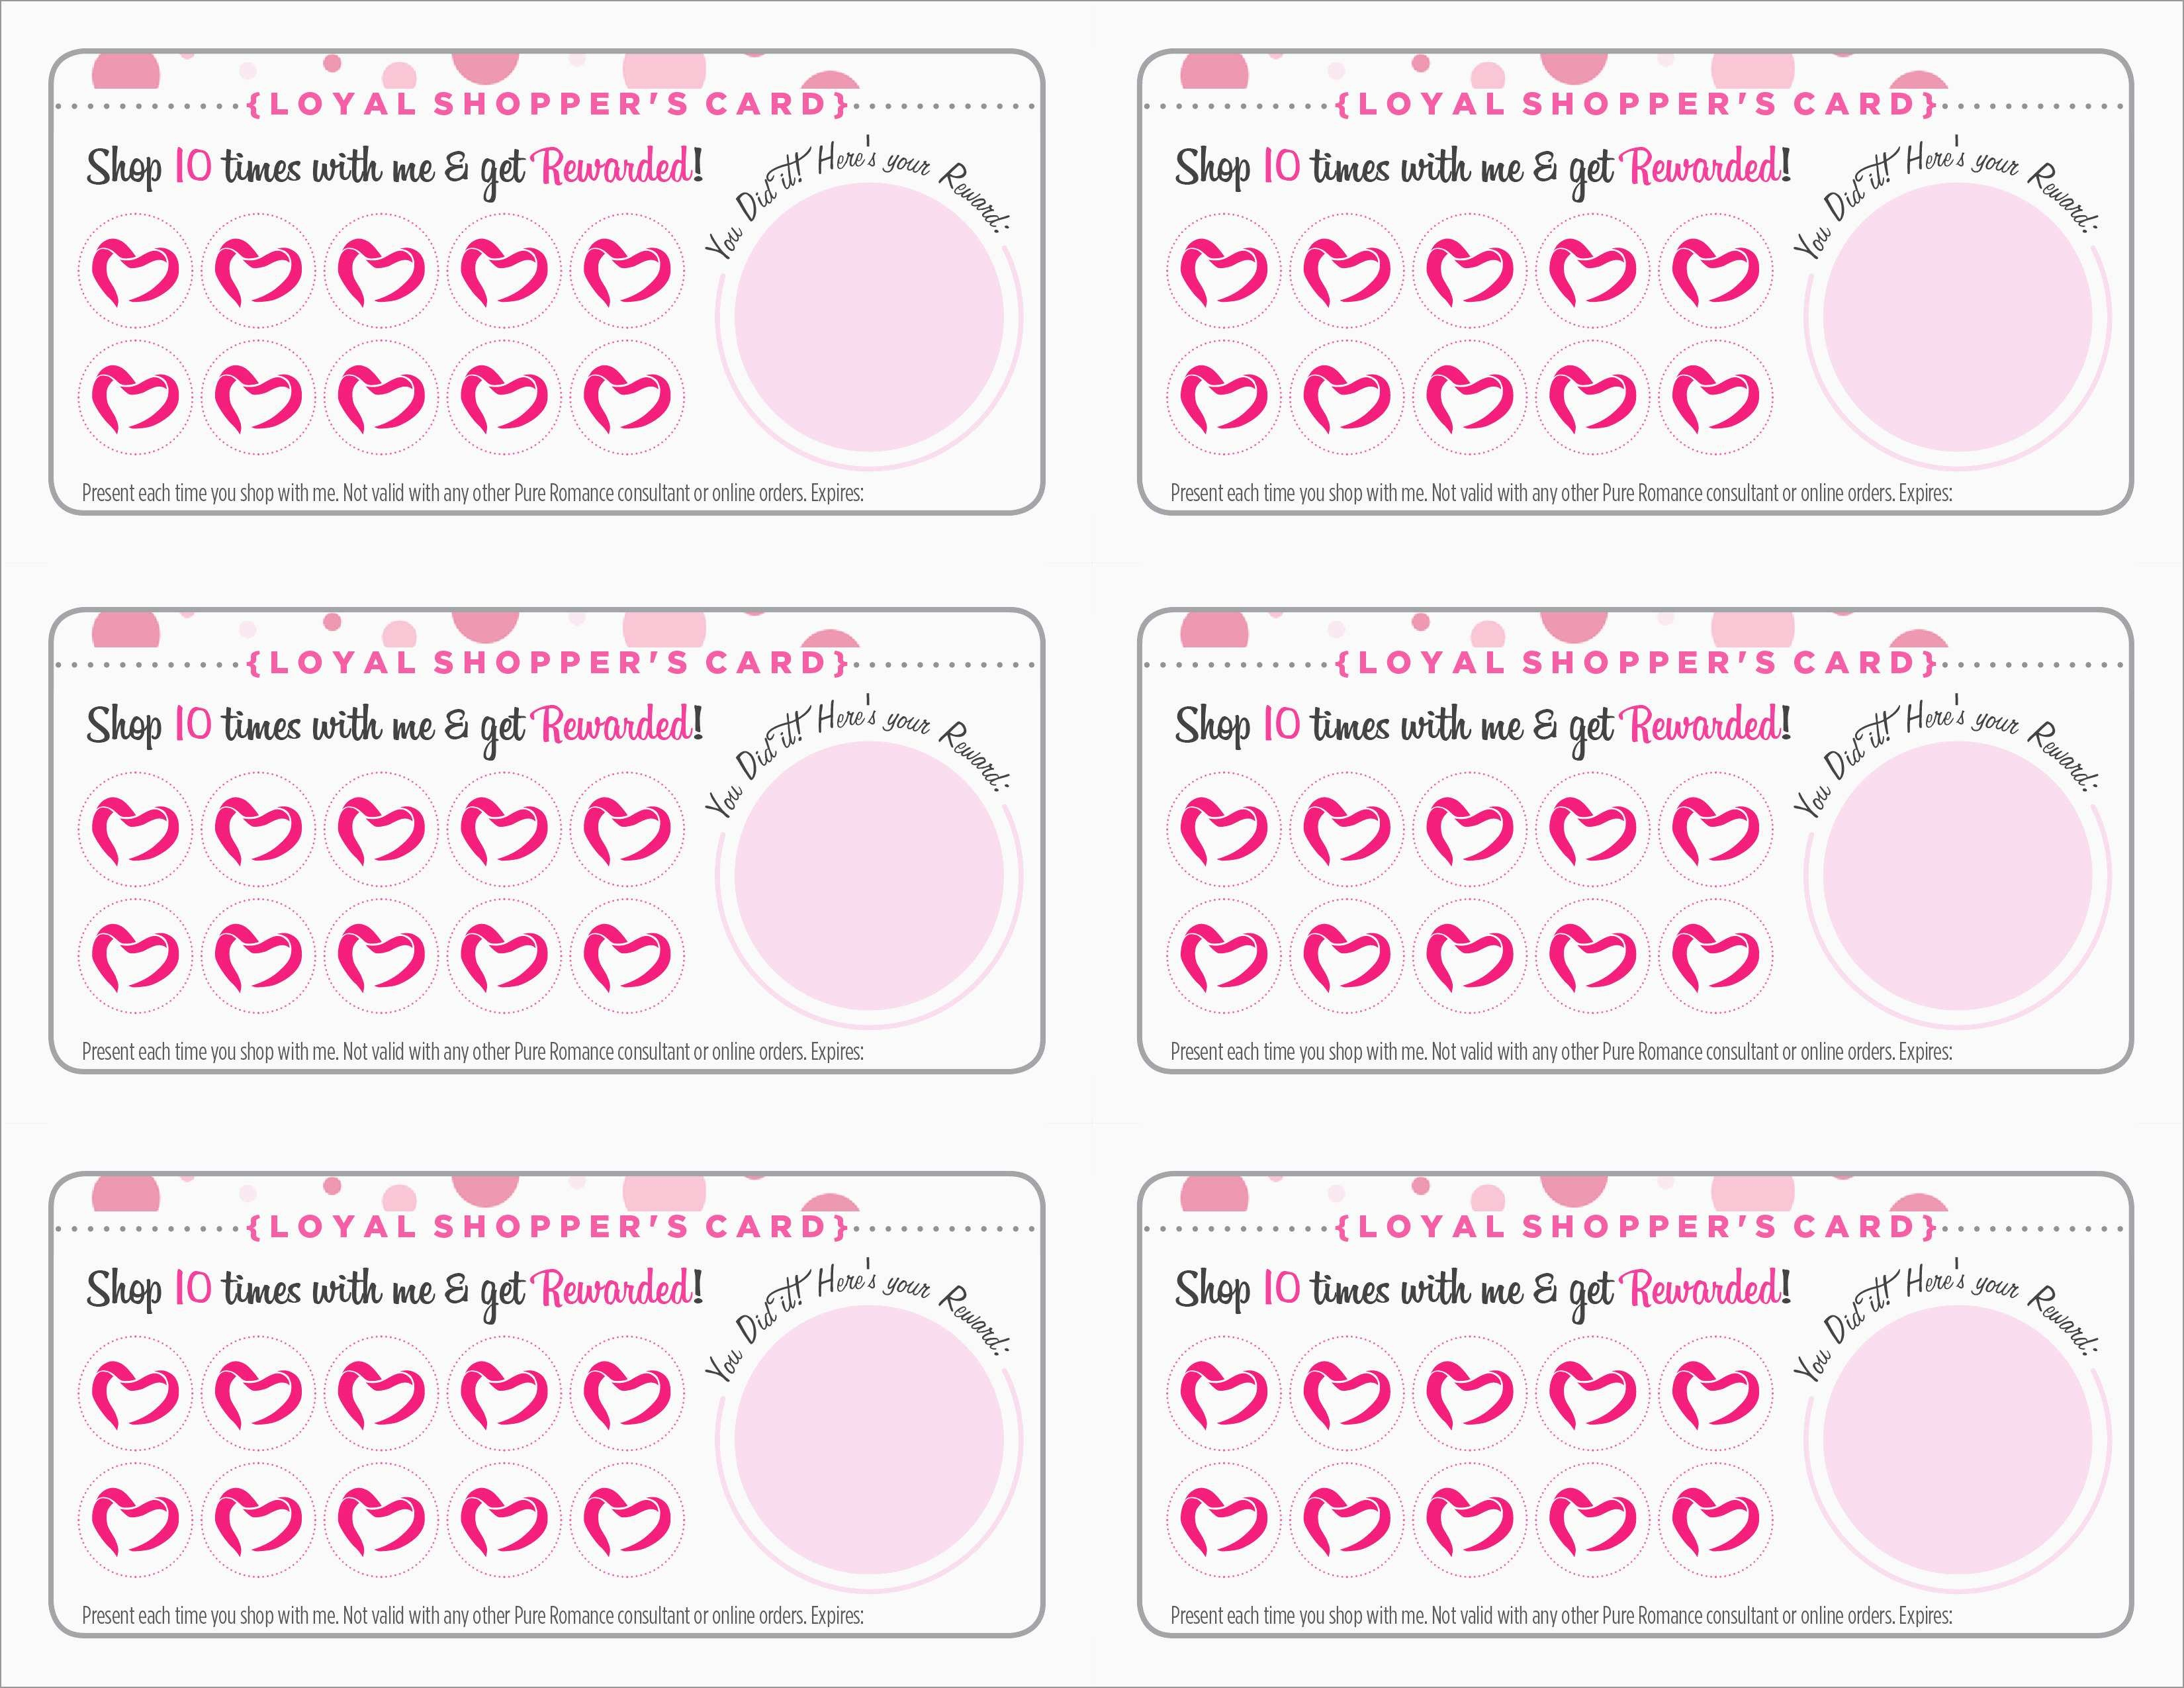 Free Printable Loyalty Card Template Fabulous 10 1 Free Punch Card - Free Printable Loyalty Card Template